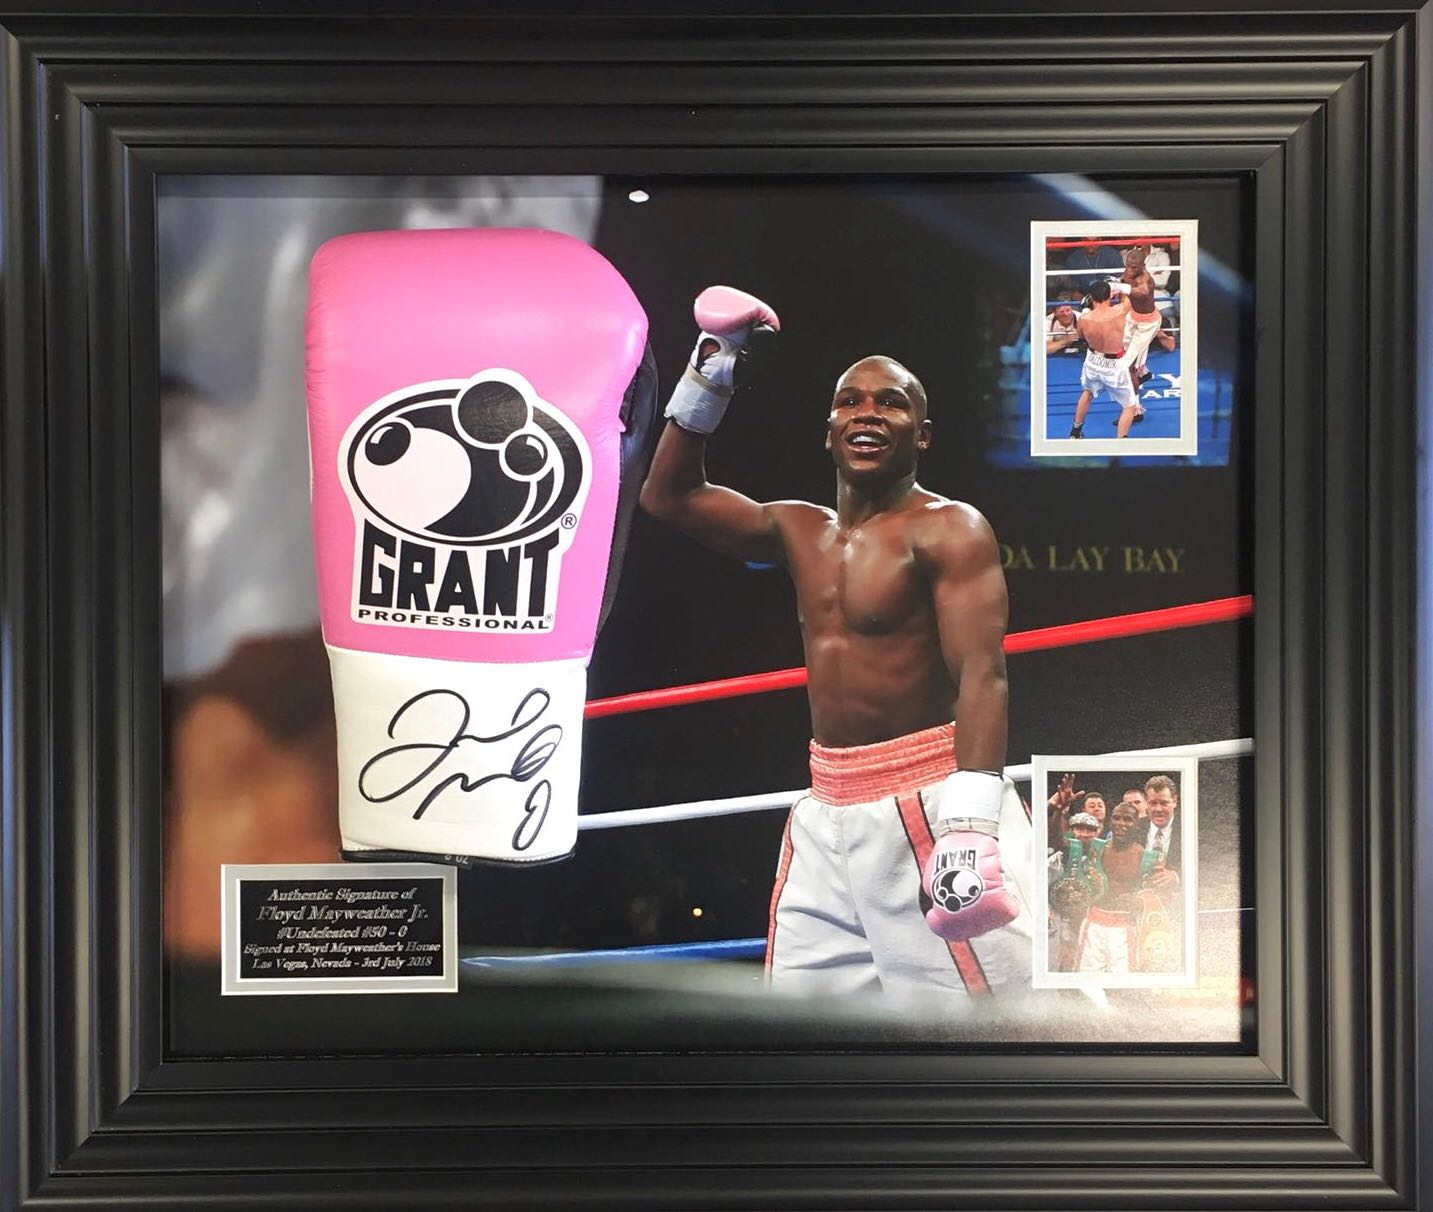 Grant Boxing Gloves Las Vegas - The Best Quality Gloves